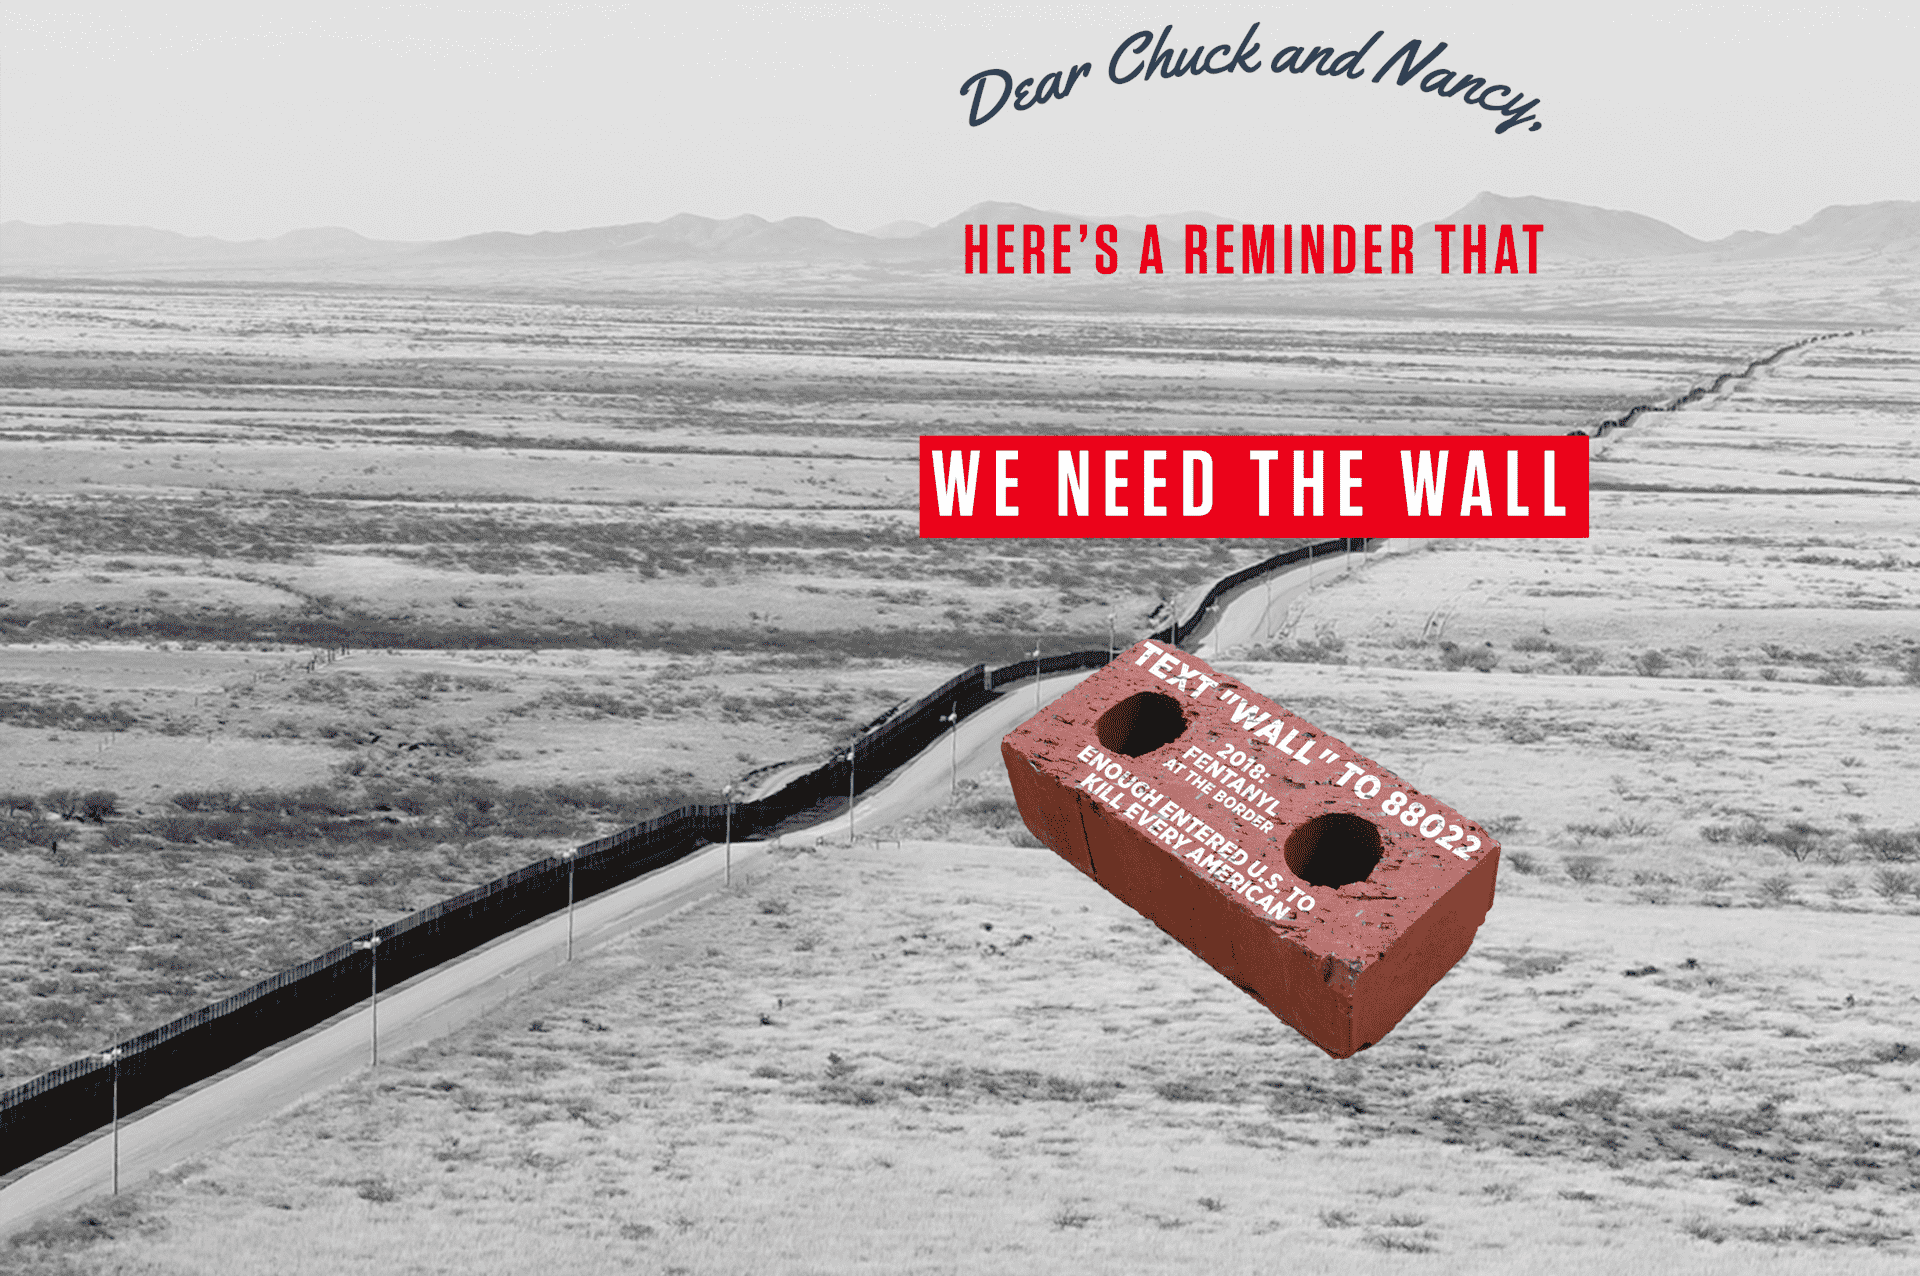 We need the wall chuck and nancy revv